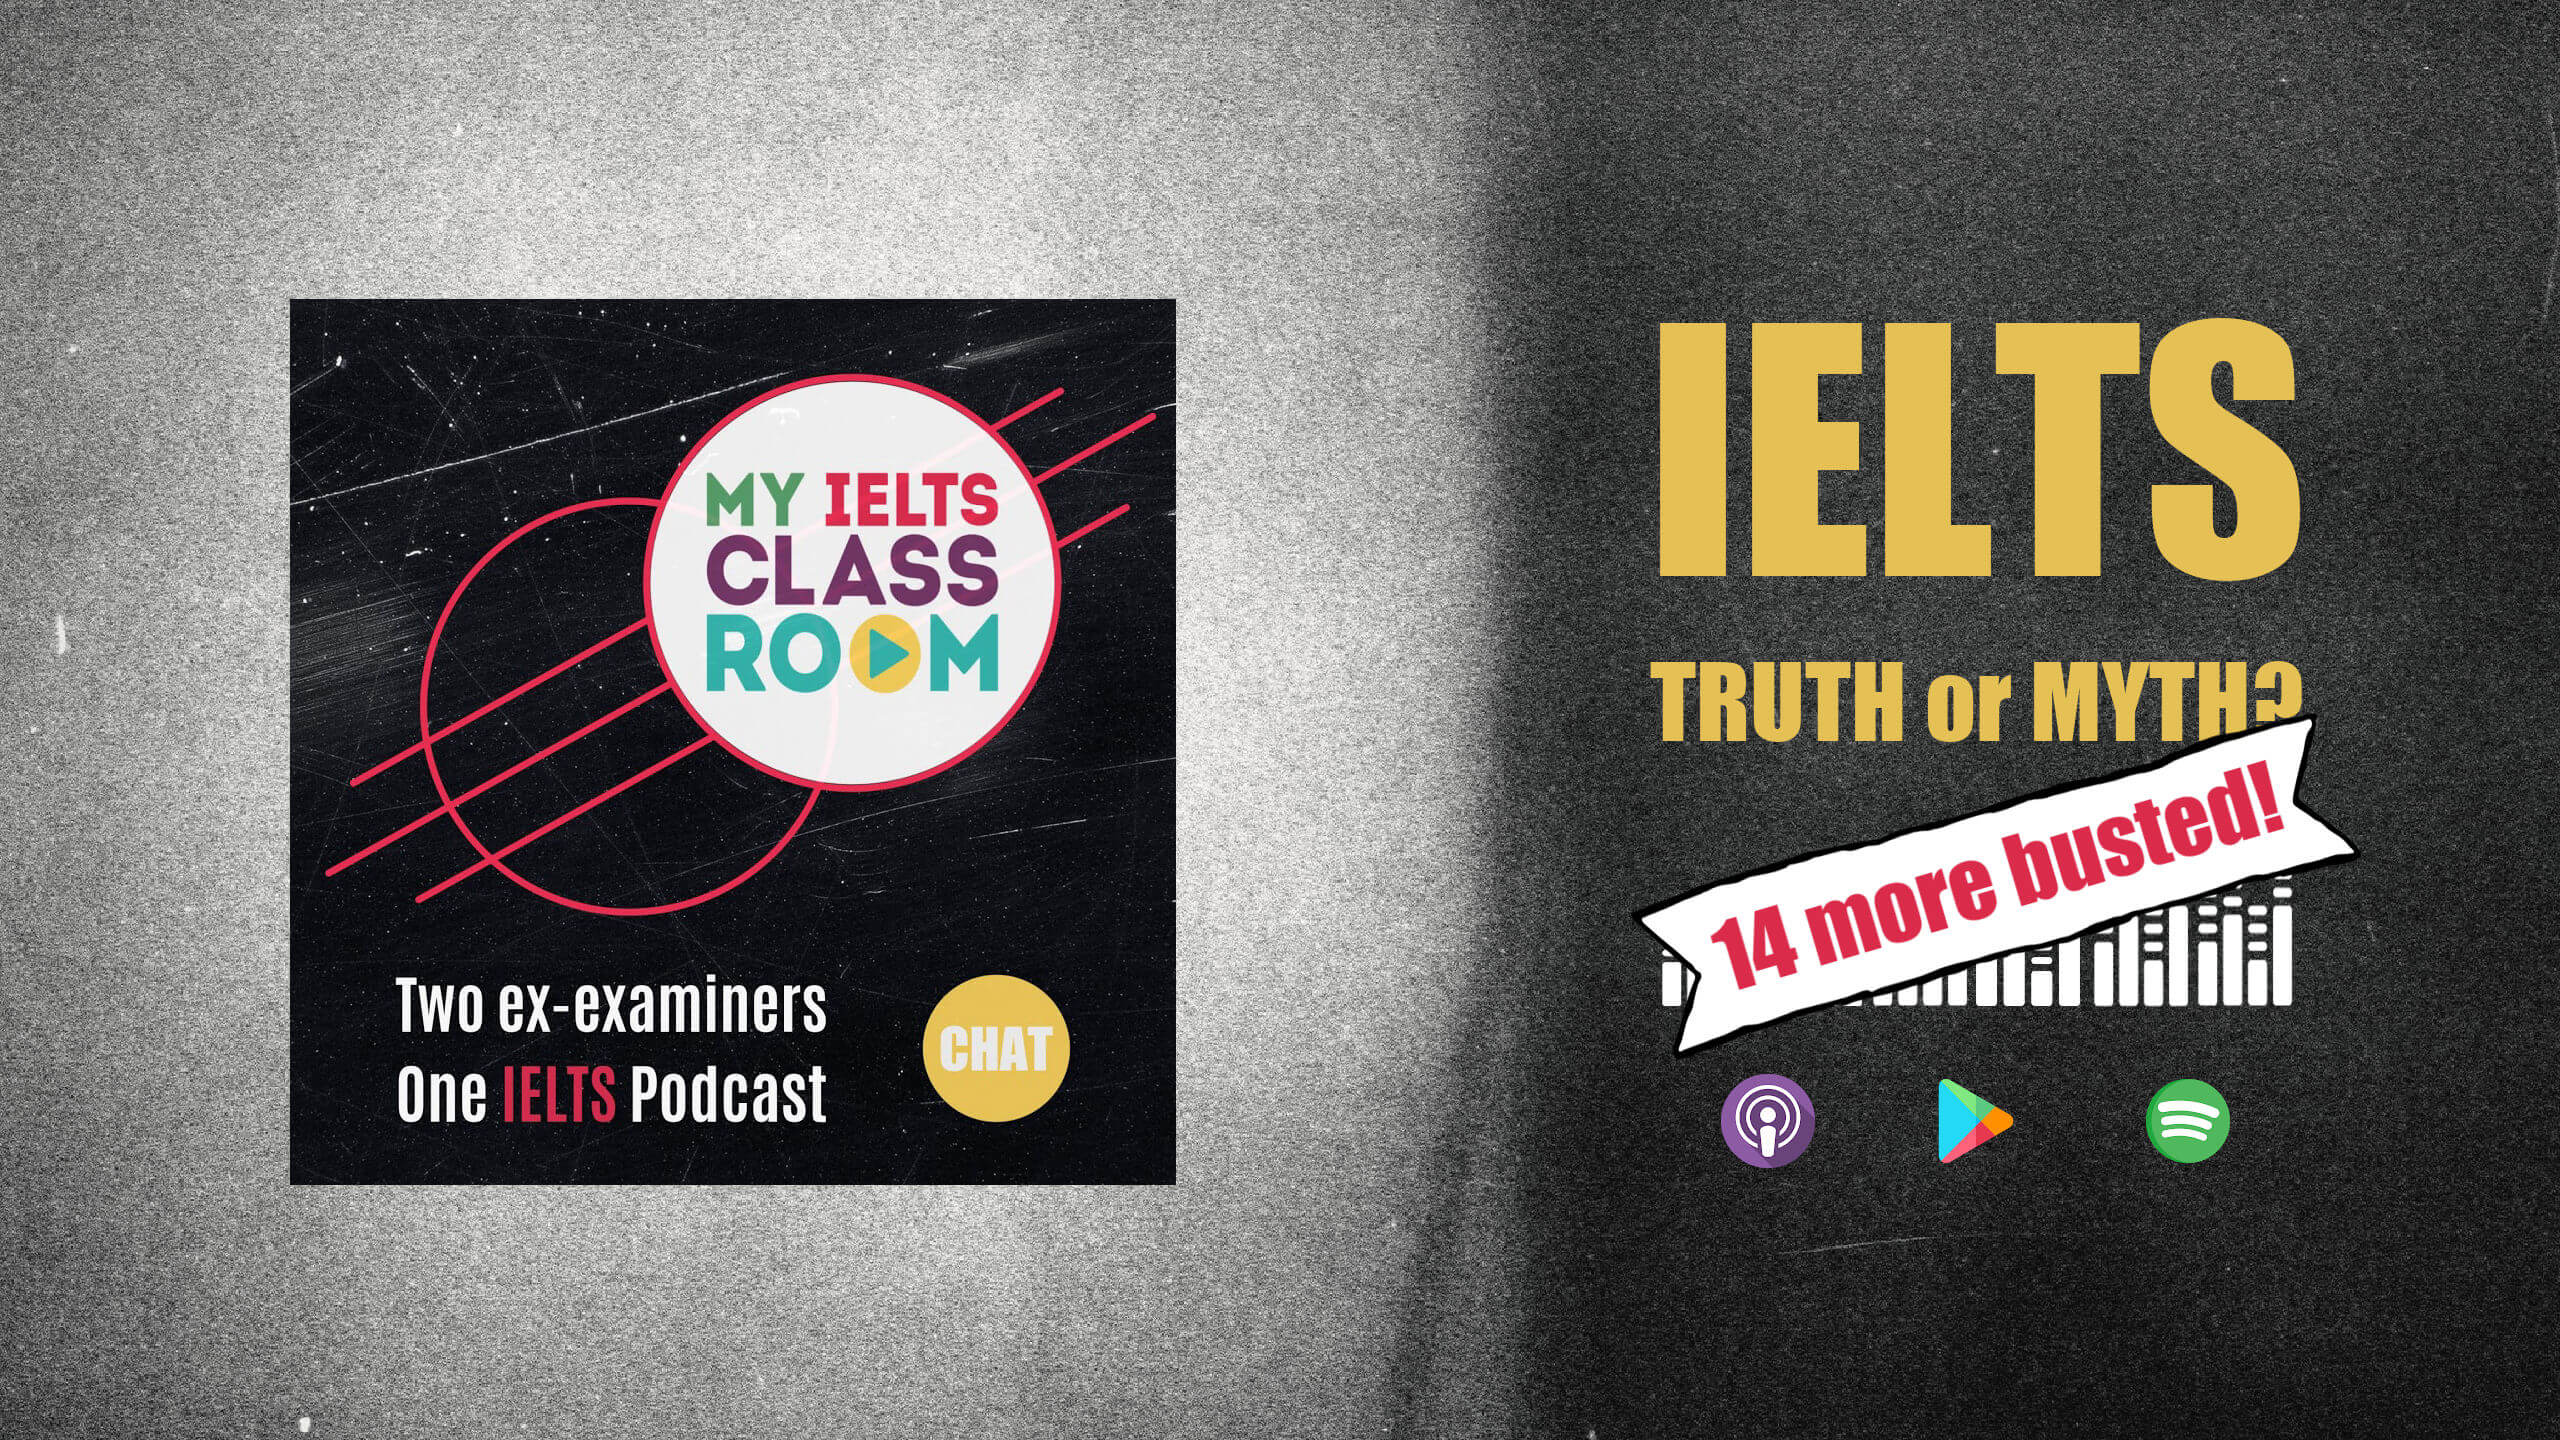 A podcast front cover that says IETS Myths - 14 more busted